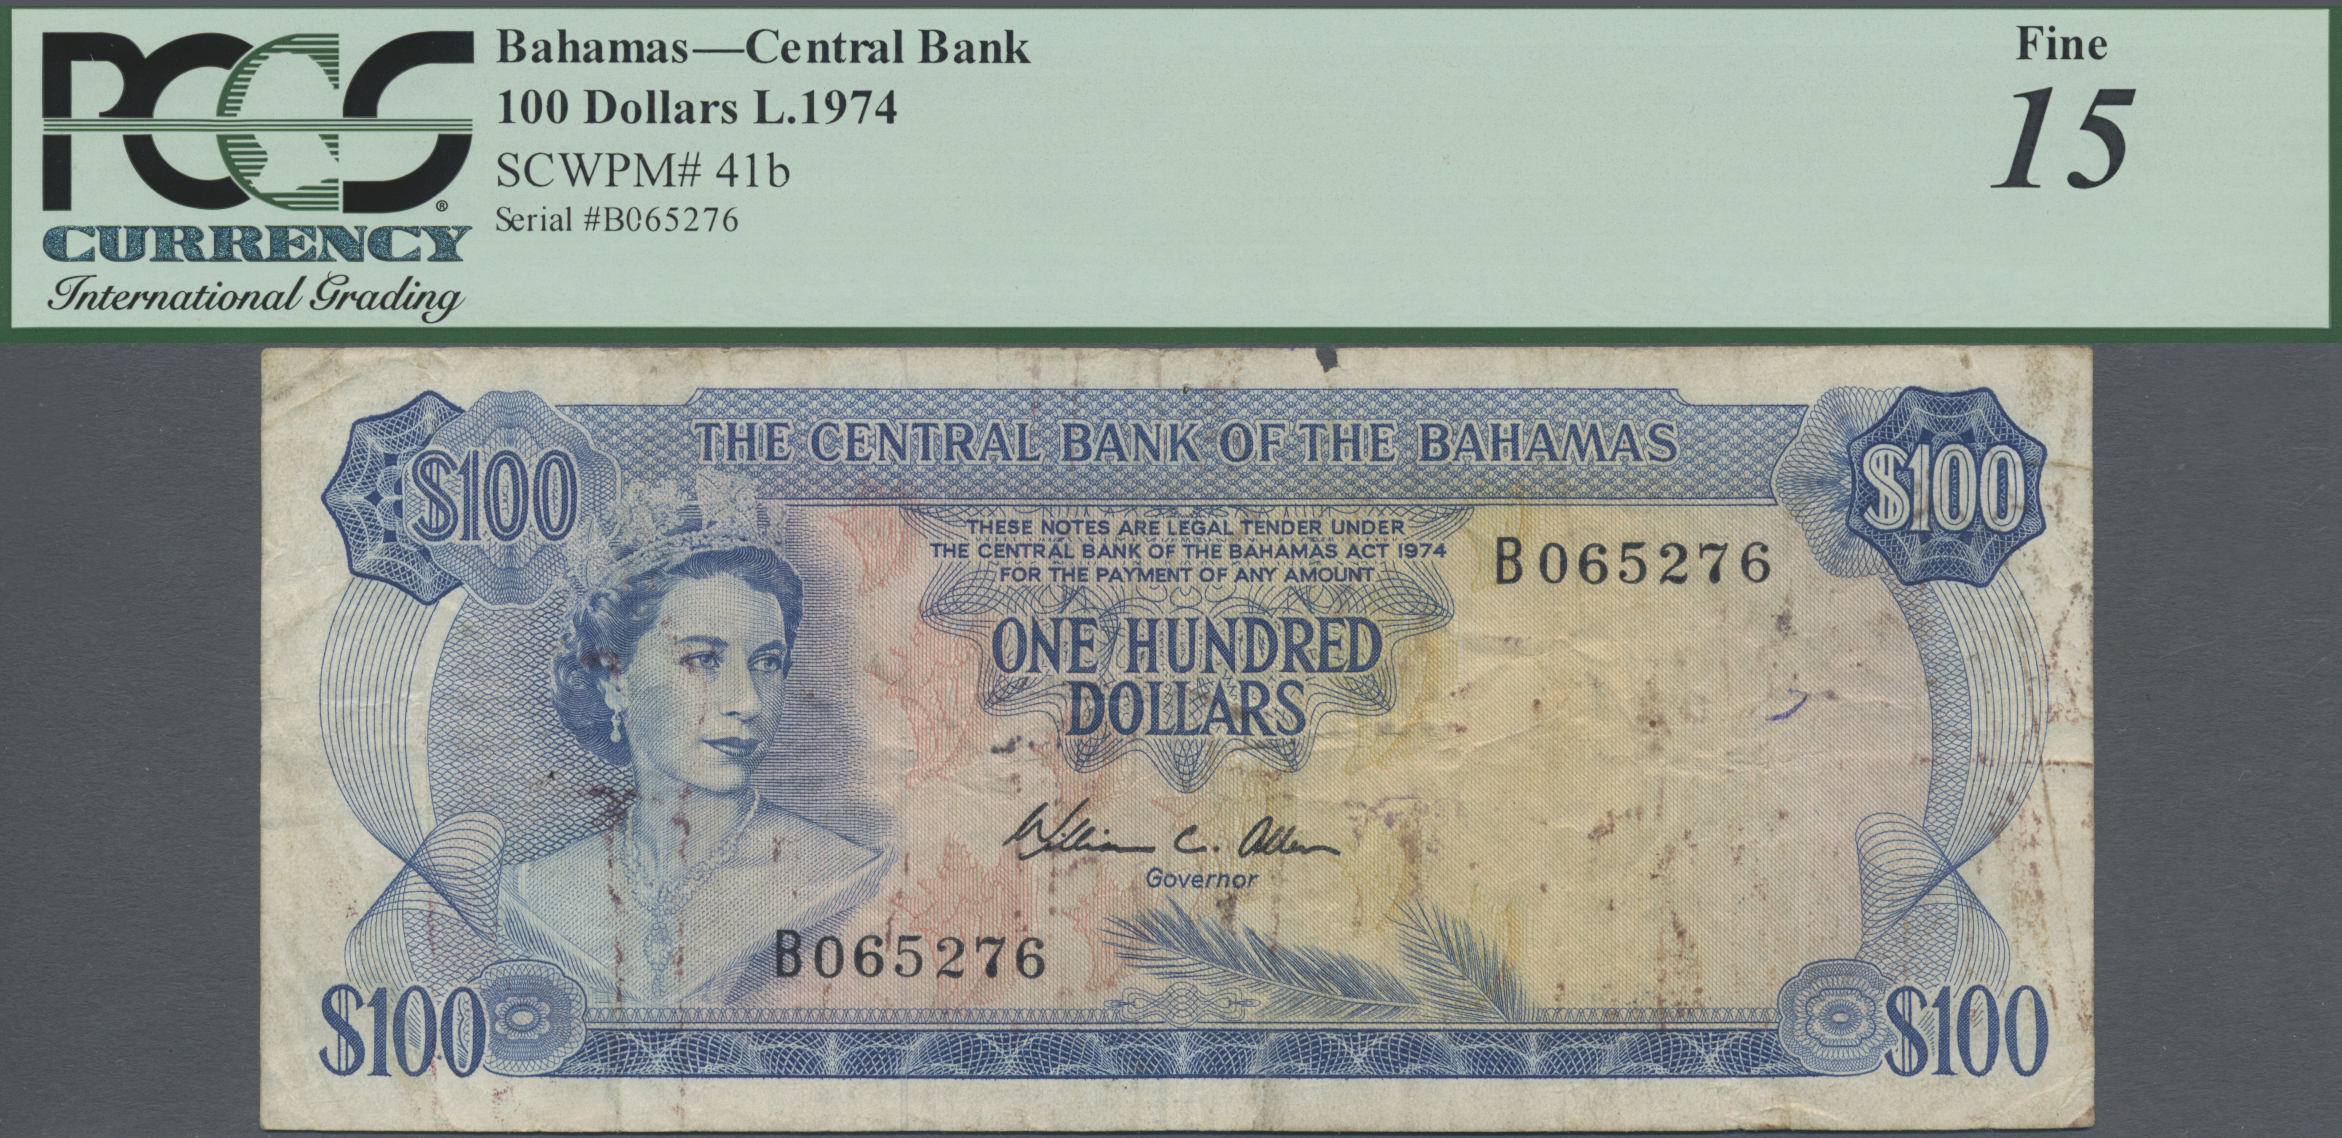 Lot 00057 - Bahamas | Banknoten  -  Auktionshaus Christoph Gärtner GmbH & Co. KG Sale #48 The Banknotes